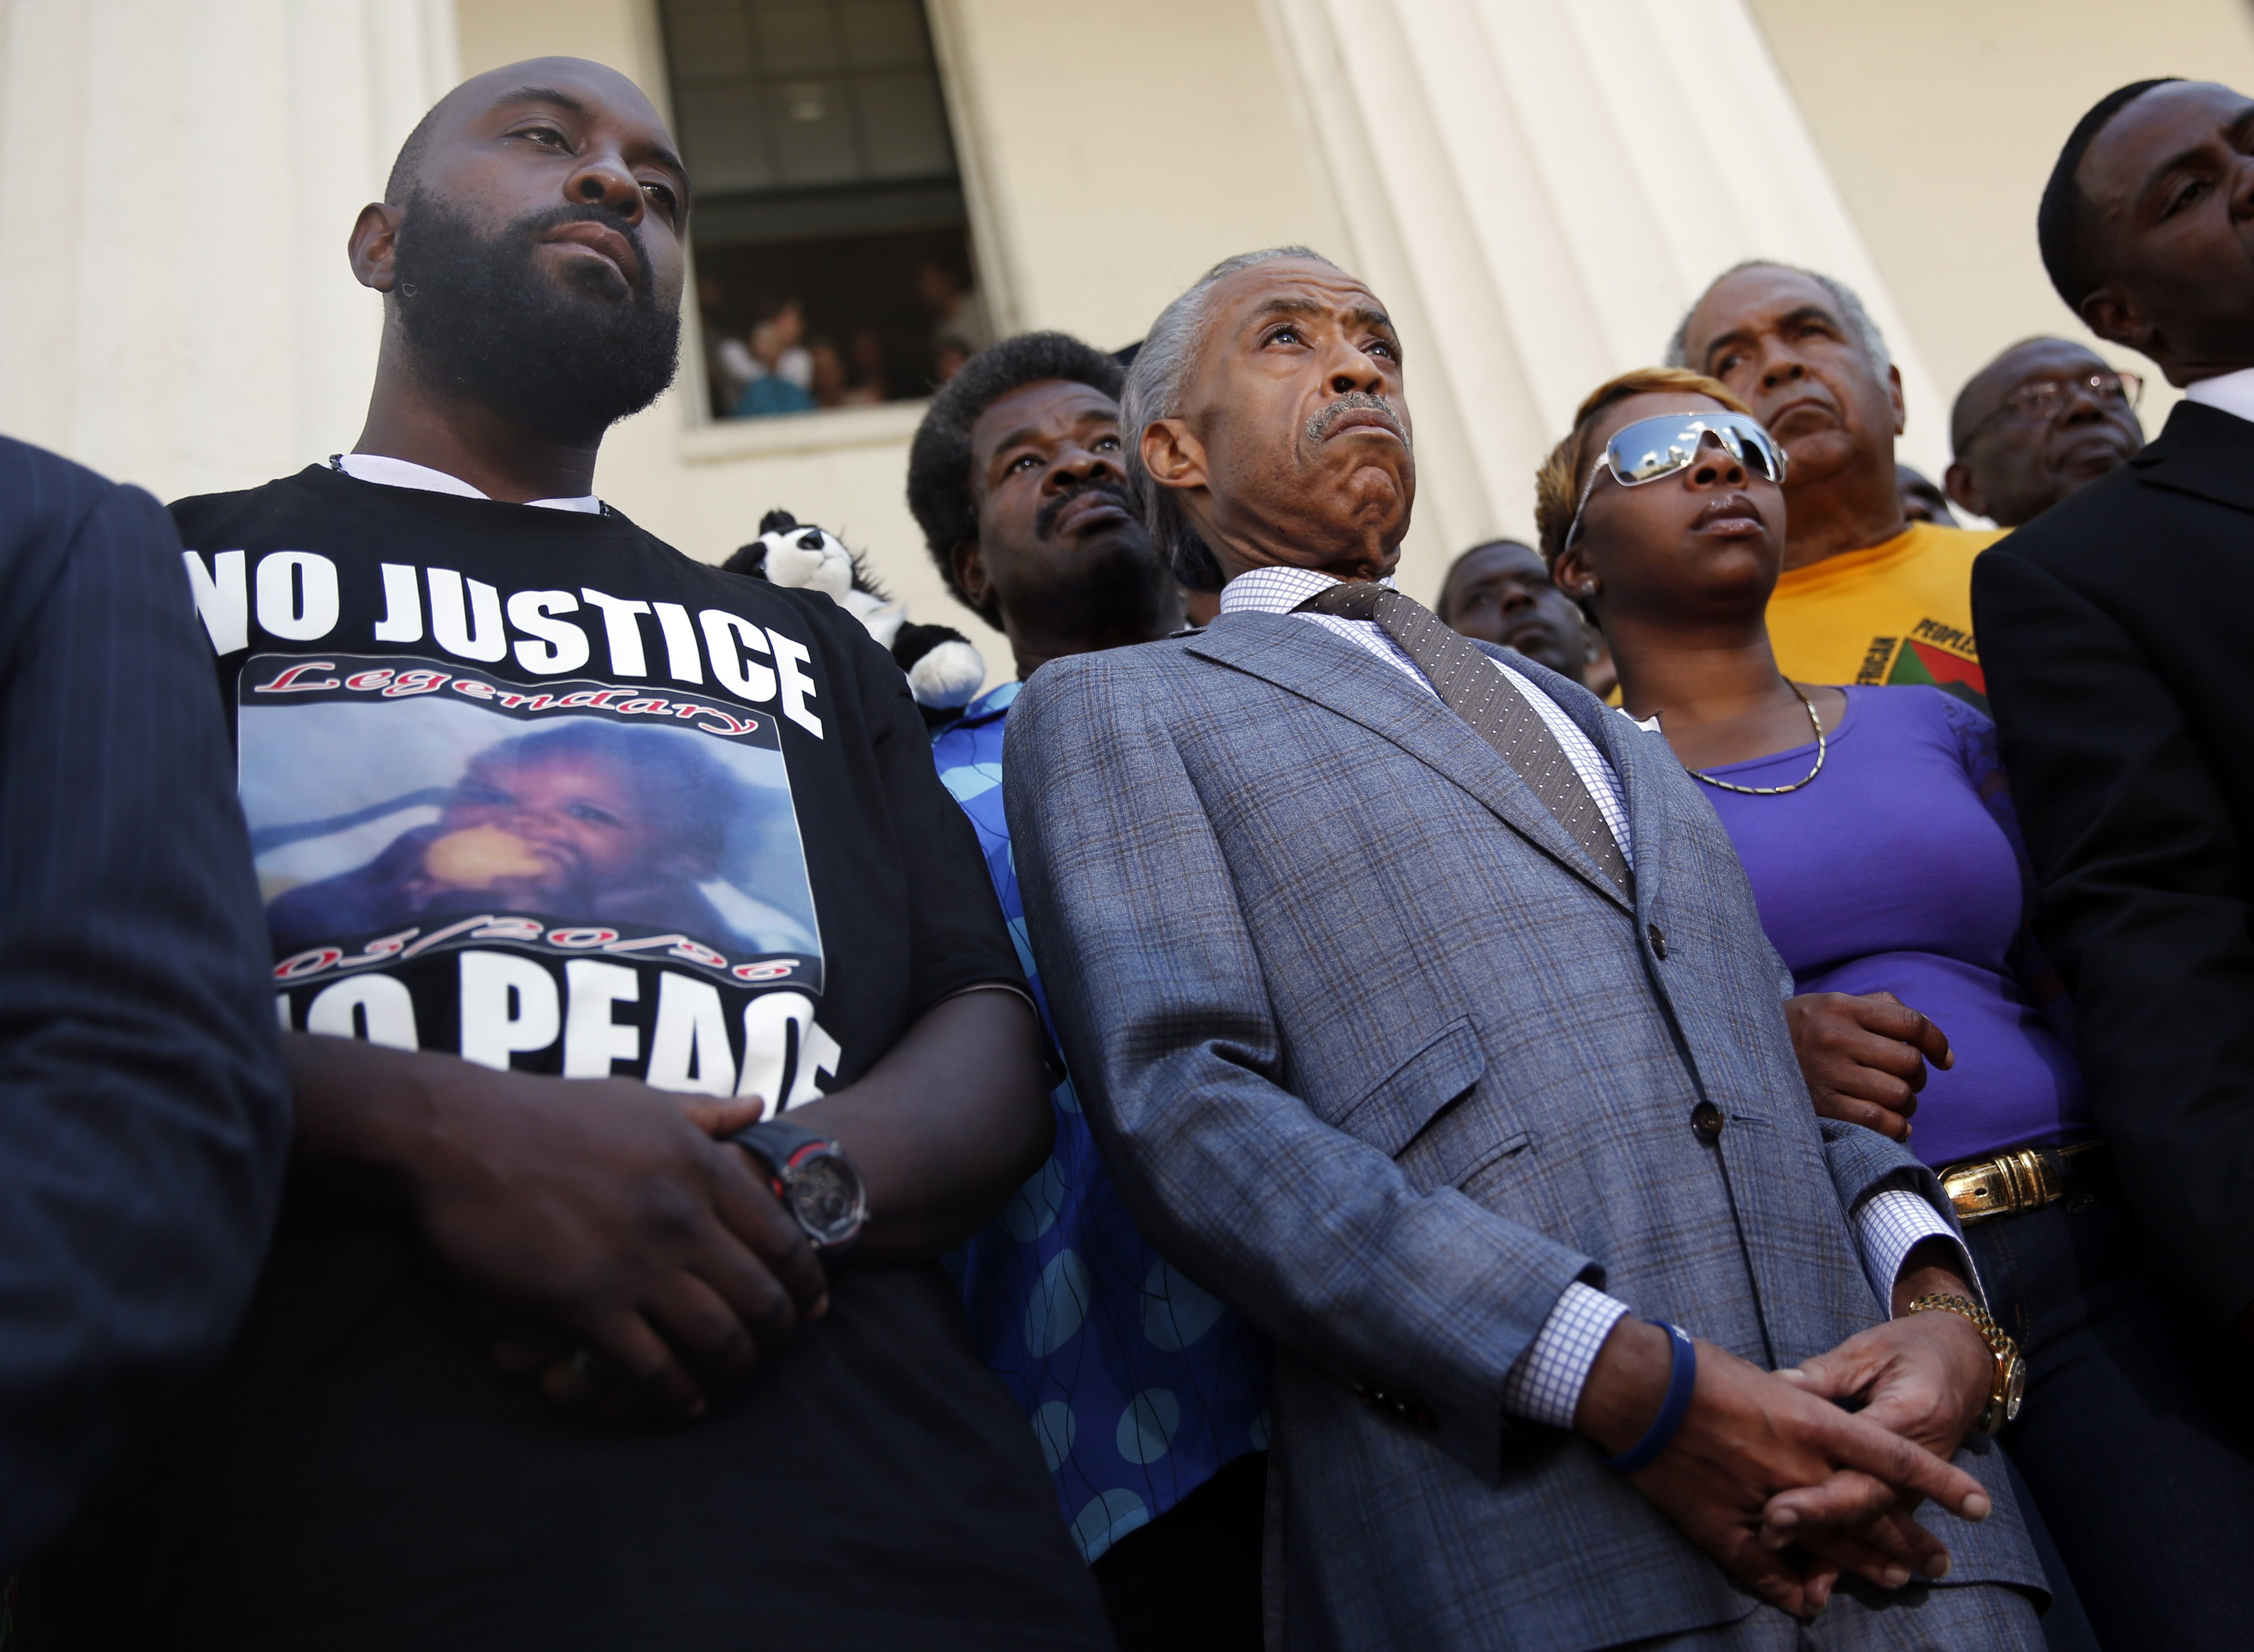 From left: Michael Brown, Sr., Reverend Al Sharpton, and Lesley McSpadden during a news conference outside the Old Courthouse in St. Louis on Aug. 12, 2014.